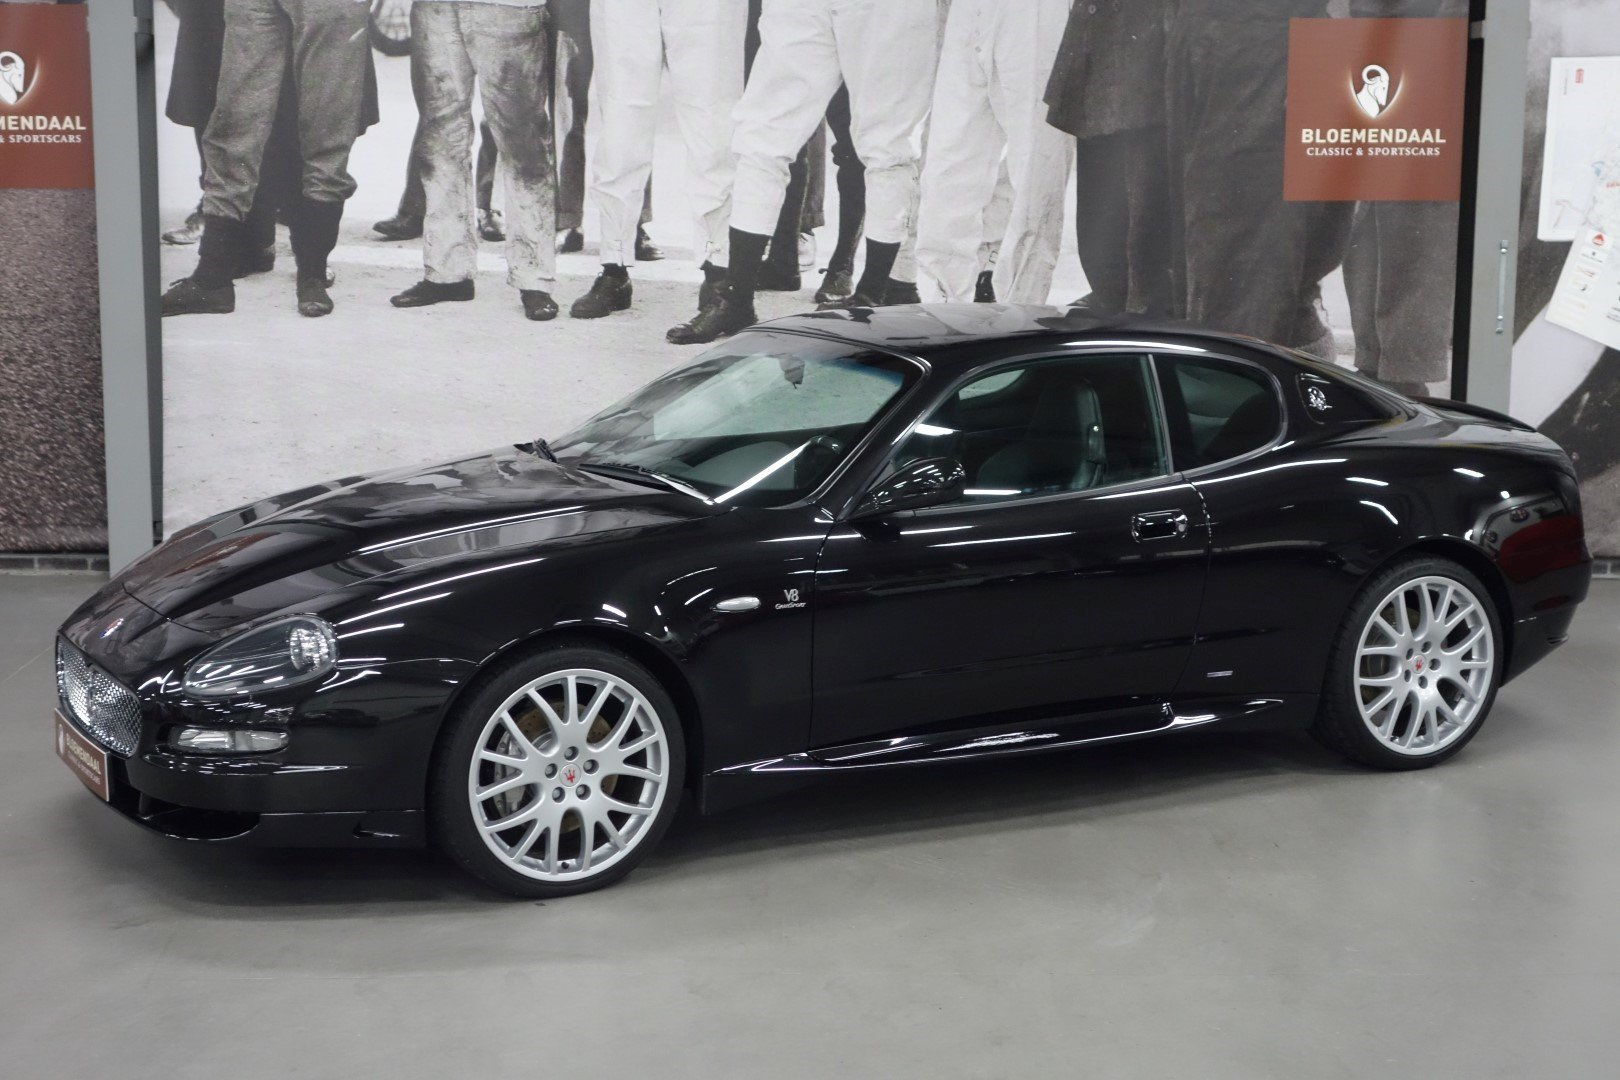 2005 Maserati GranSport 4.2 Coupe SOLD   Car and Classic